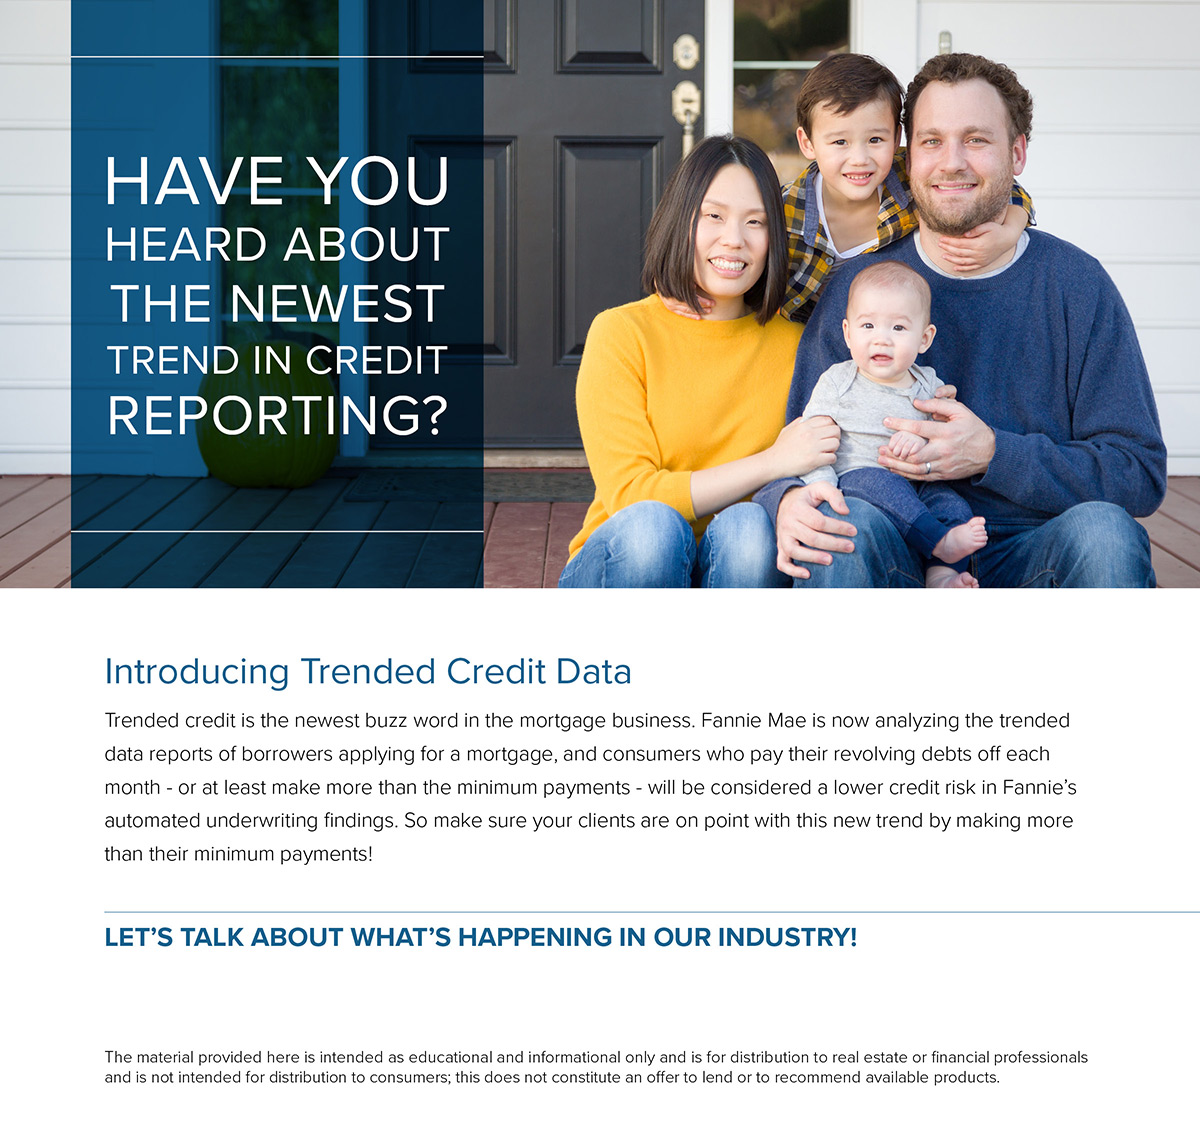 Fannie Mae - Referral Only - Trending Credit Data - Email.jpg